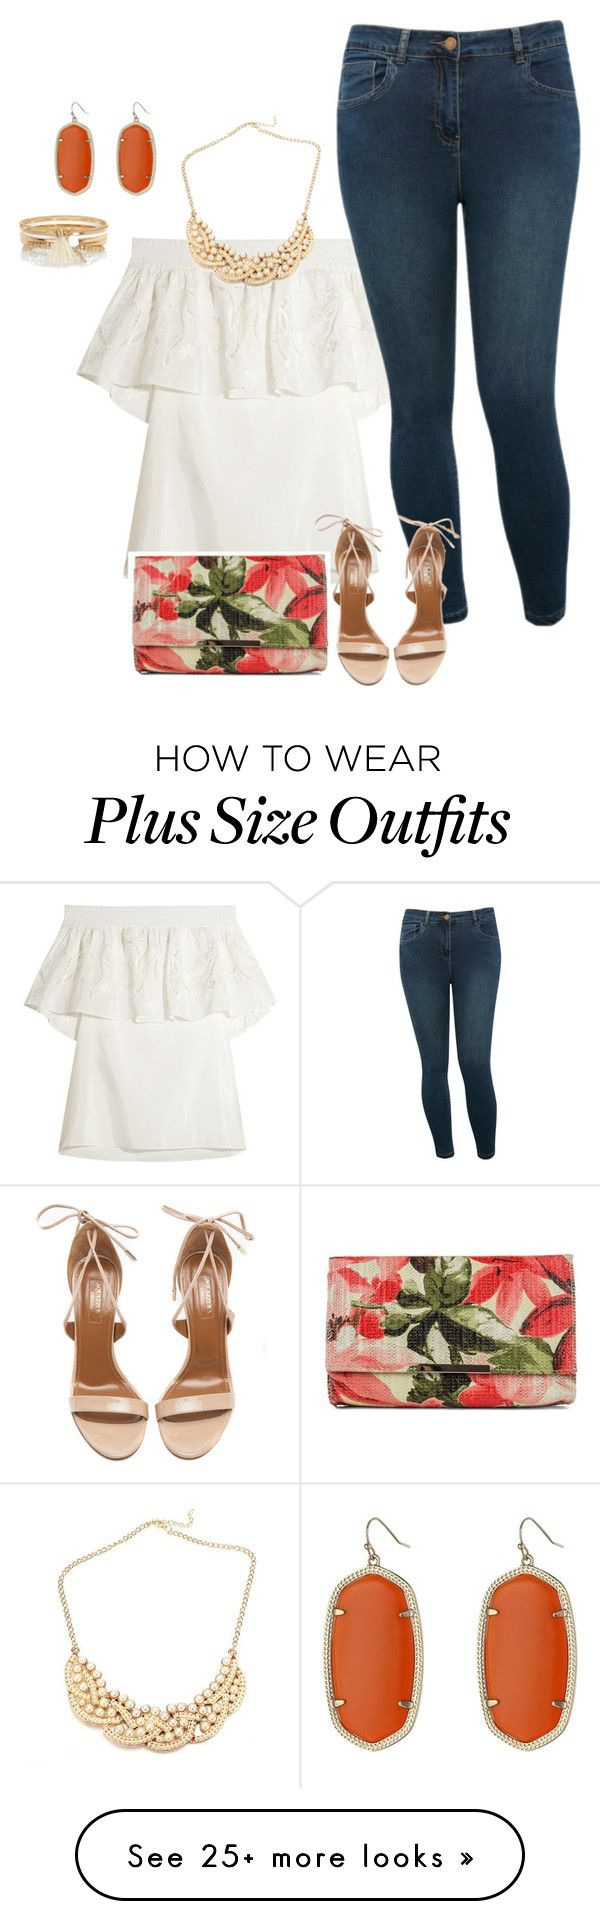 """""""plus size simple and chic summer nights"""" by kristie-payne on Polyvore featuring TIBI, M&Co, Aquazzura, Jessica McClintock, Kendra Scott and River Island"""